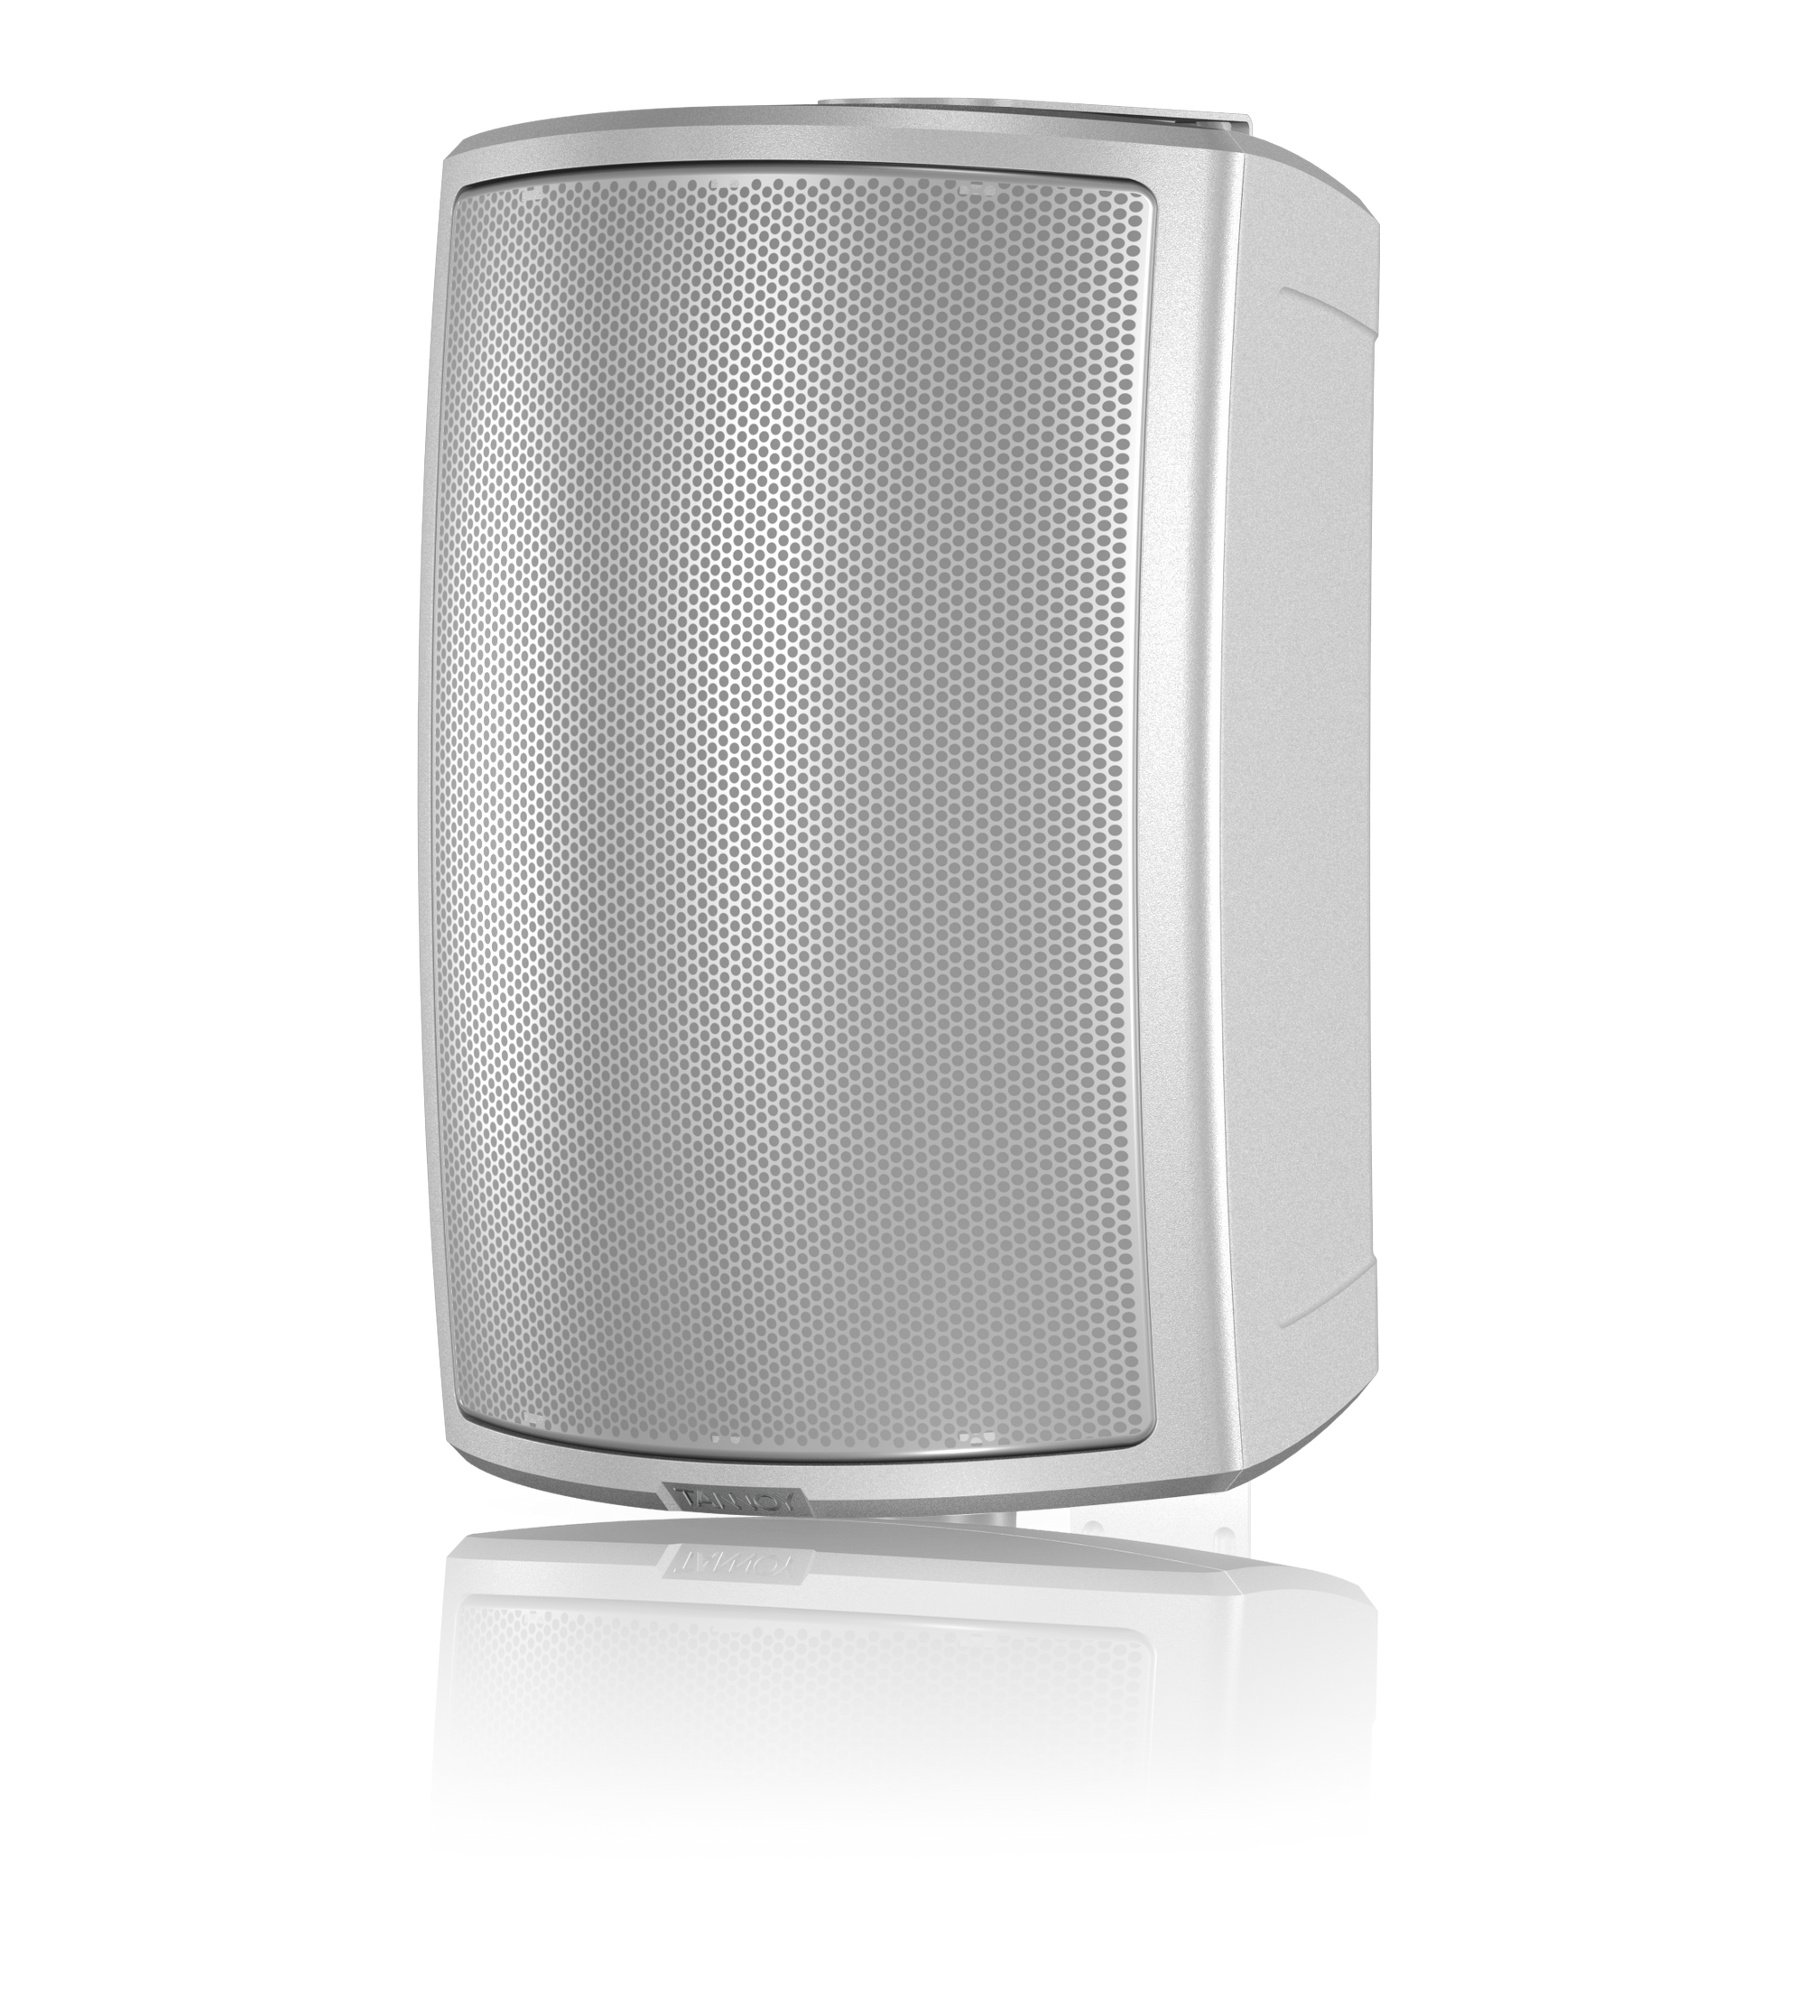 "Tannoy AMS-6ICT-WH  Passive Surface-Mount Loudspeaker Speaker 6.5"" 2-Way with ICT HF Driver, 16-Ohm, White AMS-6ICT-WH"